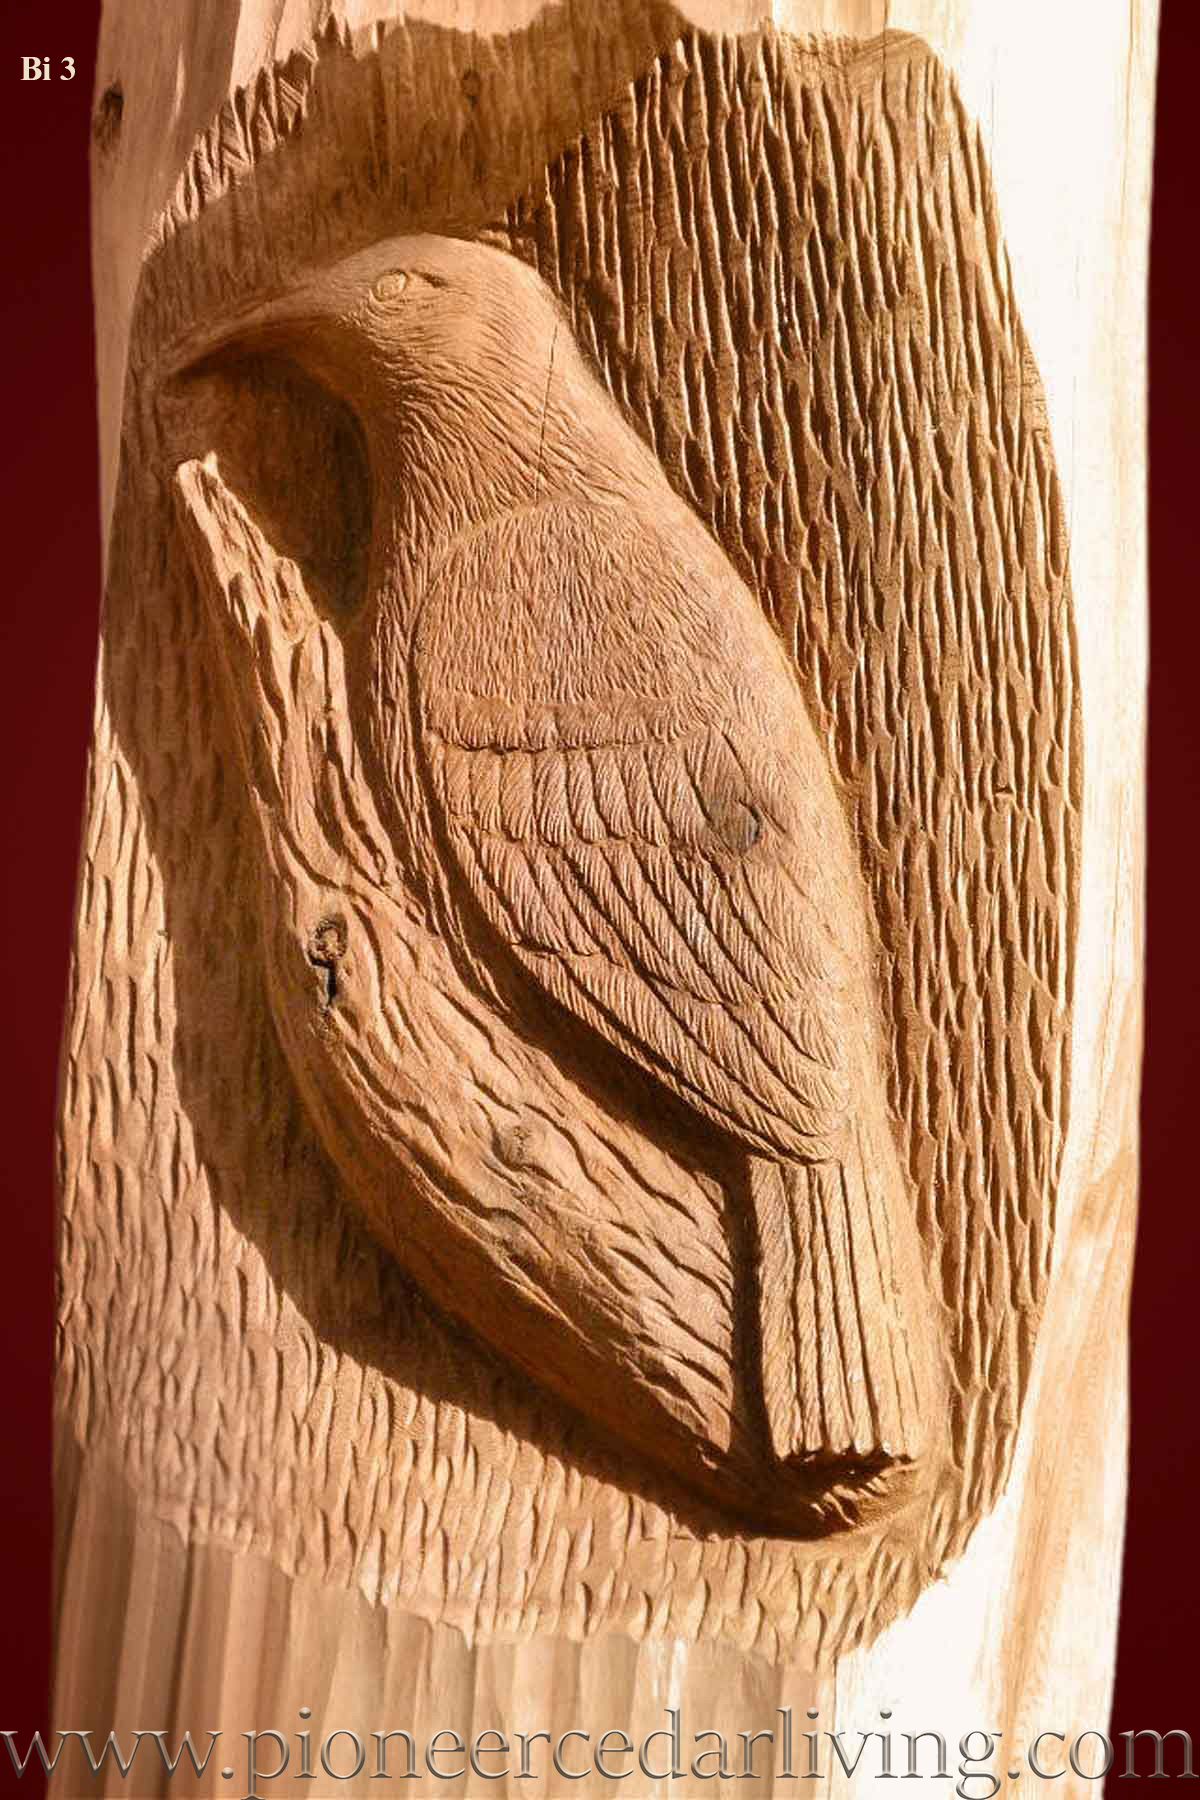 Bird relief carving